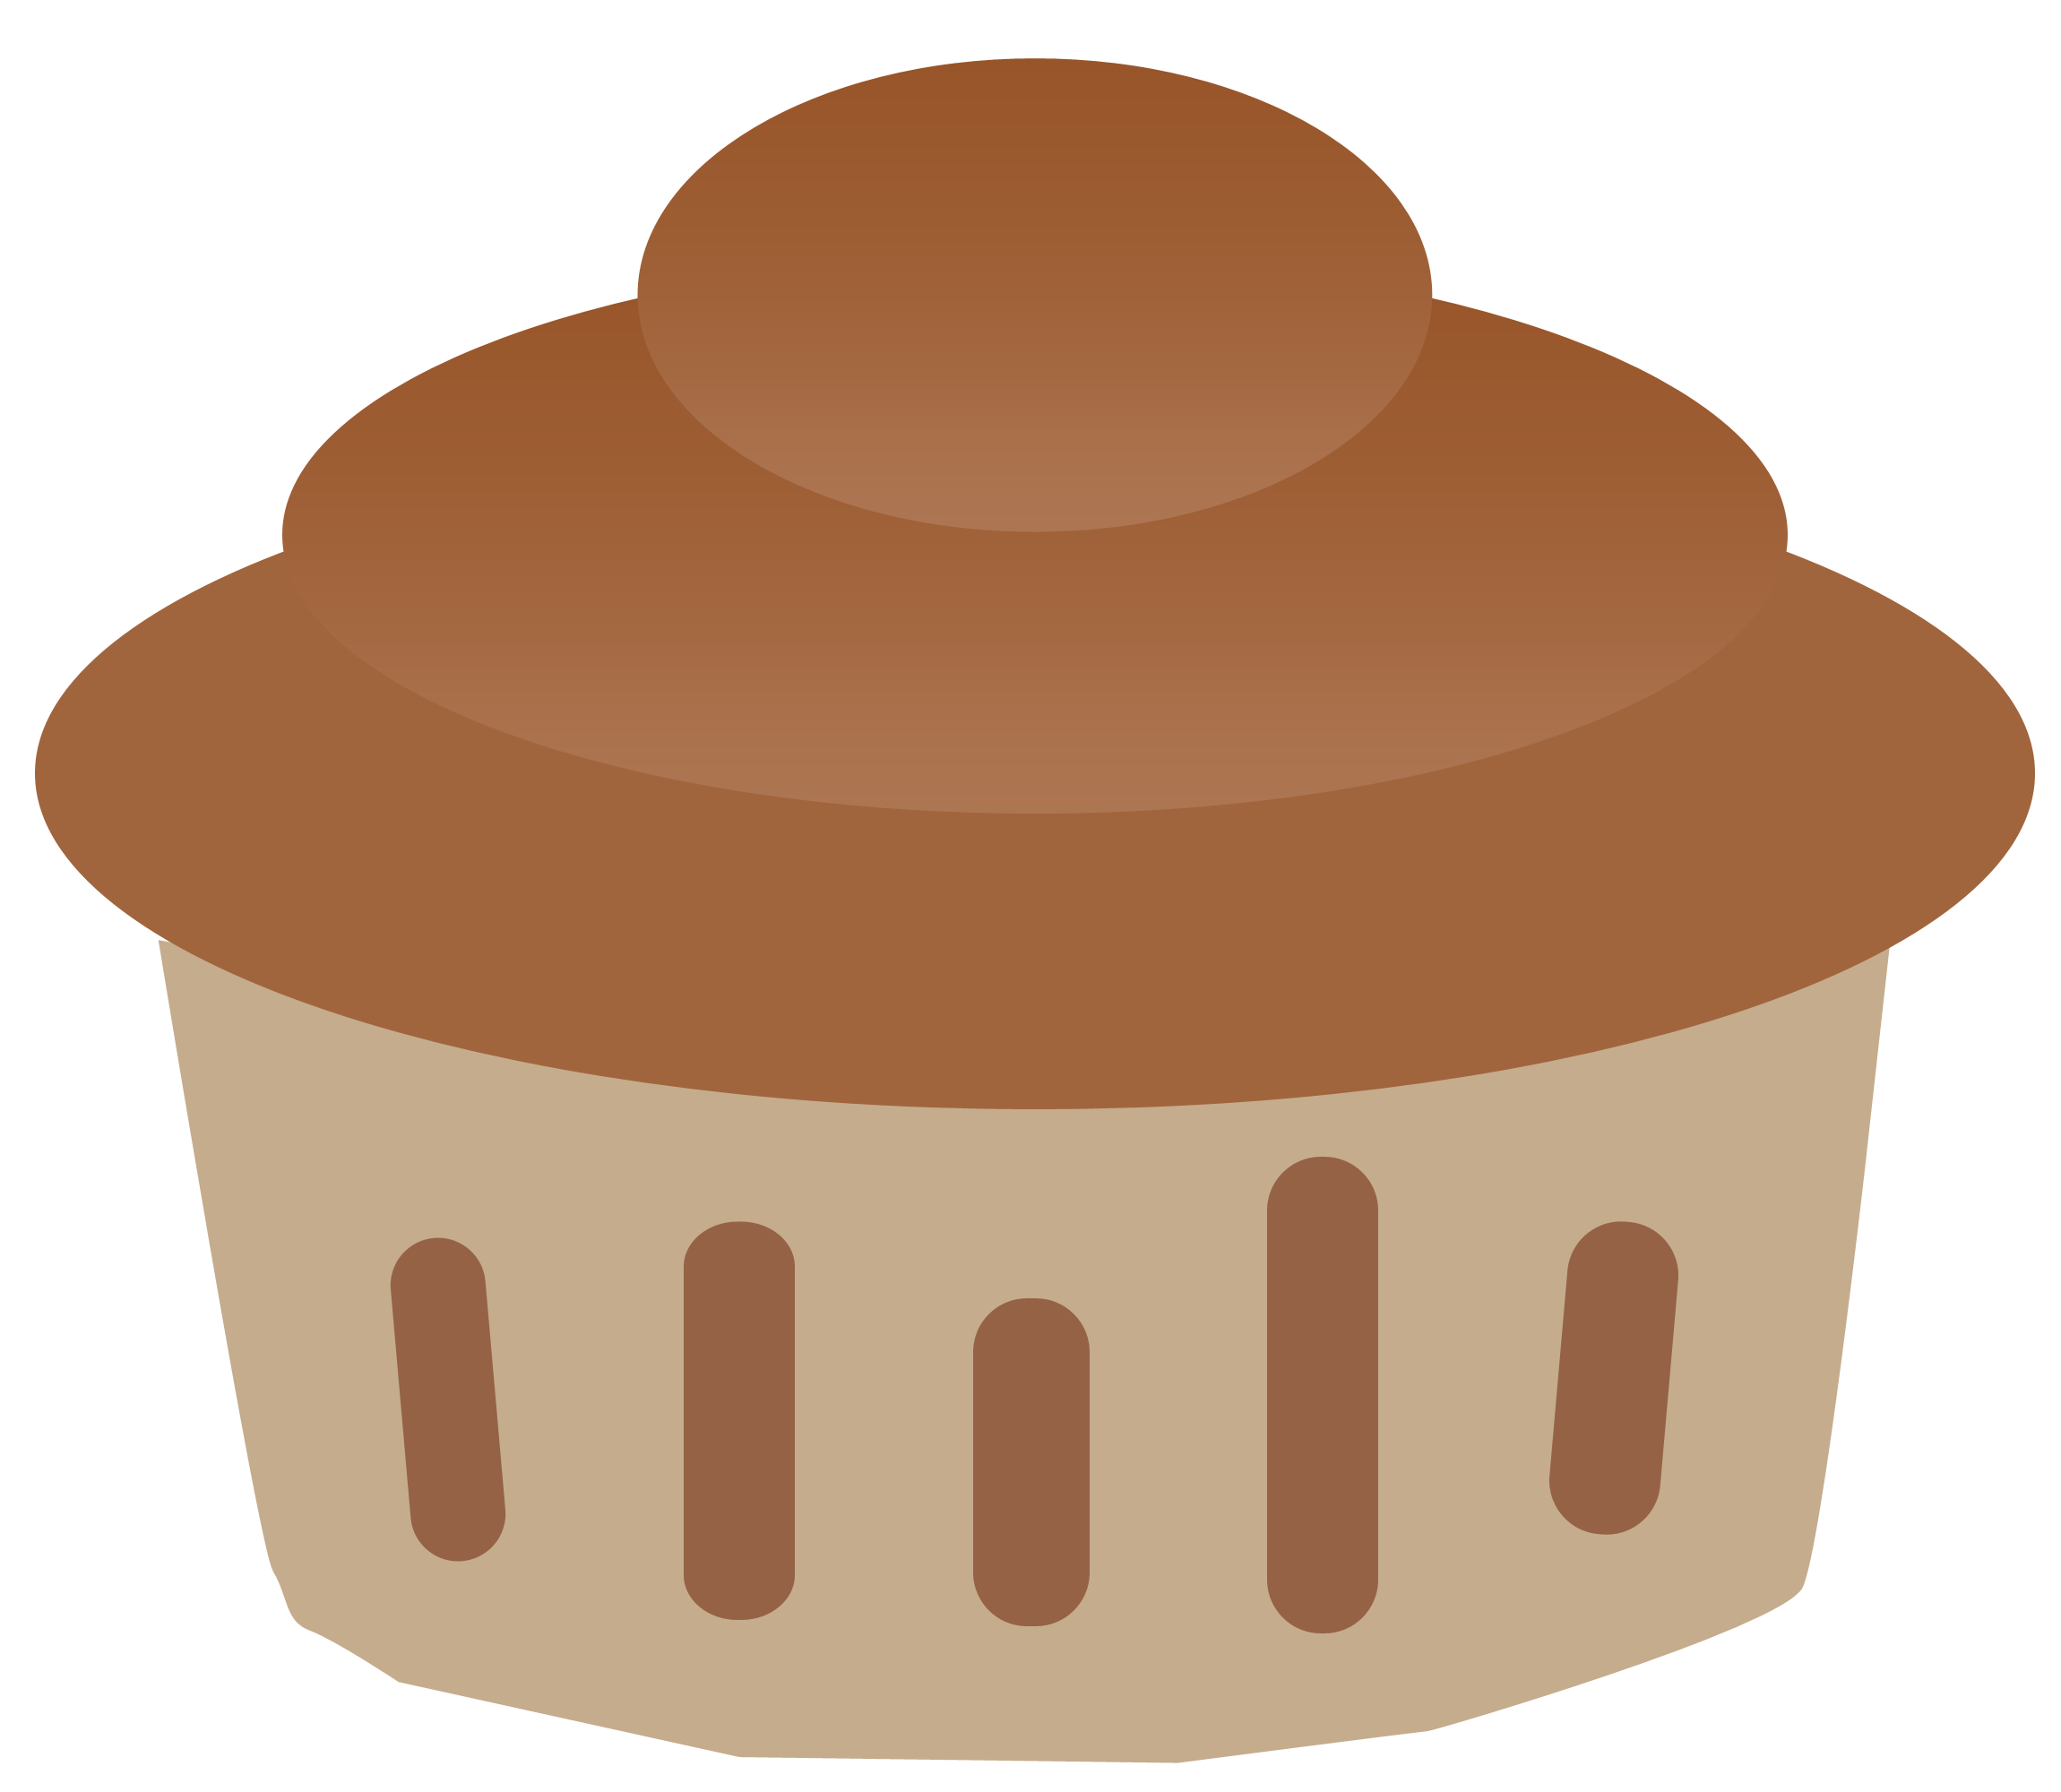 And chocolate graphic. Desserts clipart vanilla cupcake